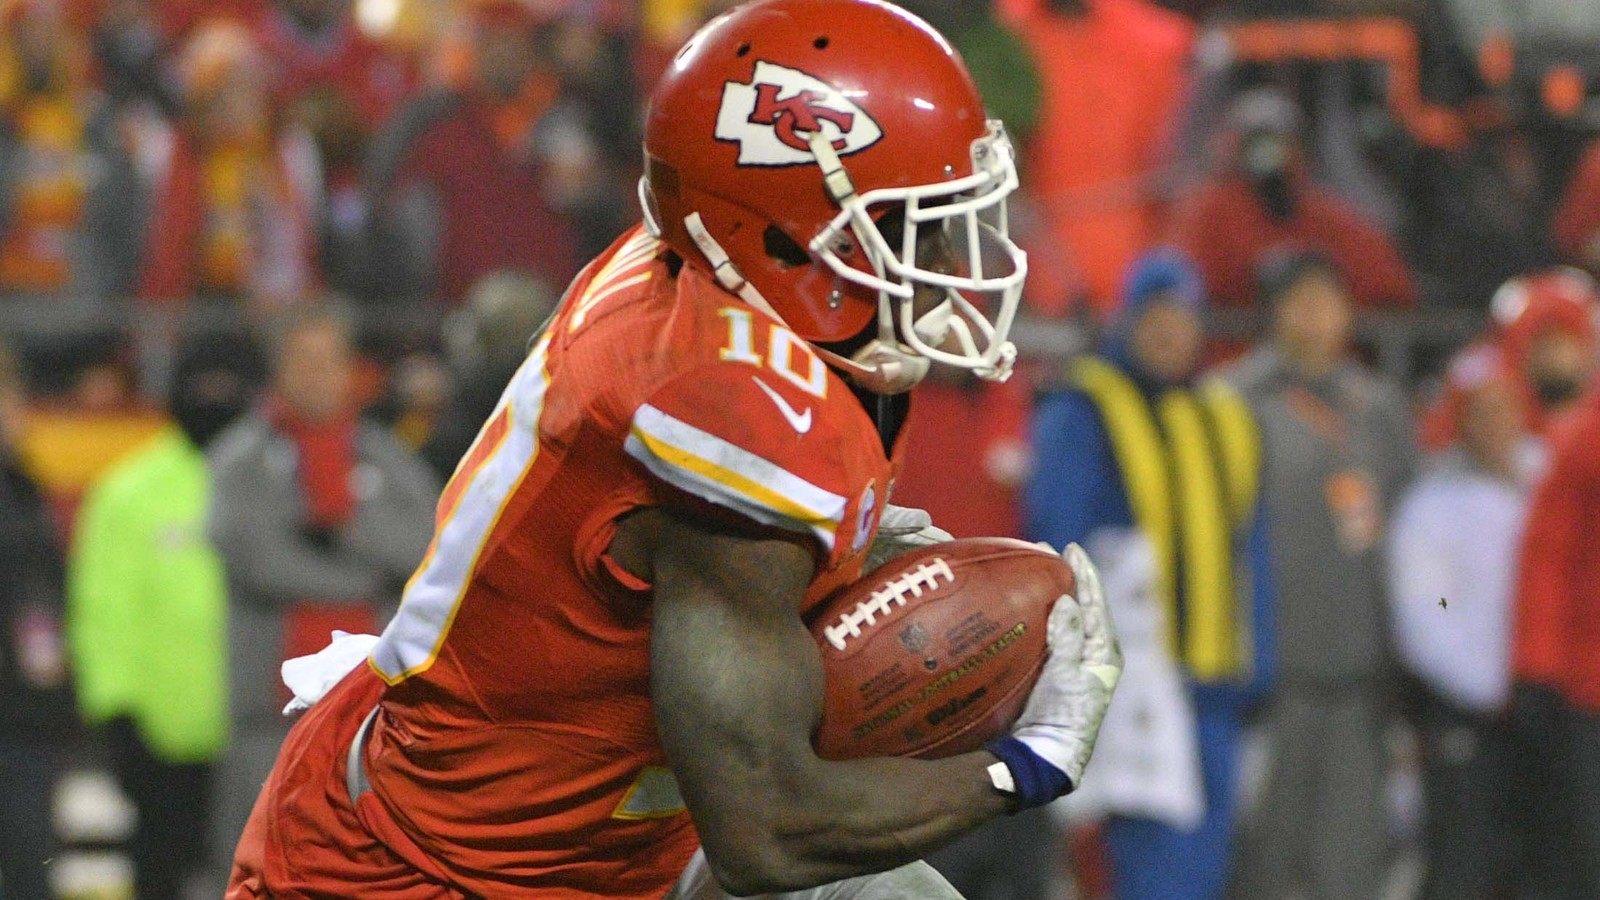 Chiefs WR Tyreek Hill Was WAY Offside on 75-Yard TD Reception